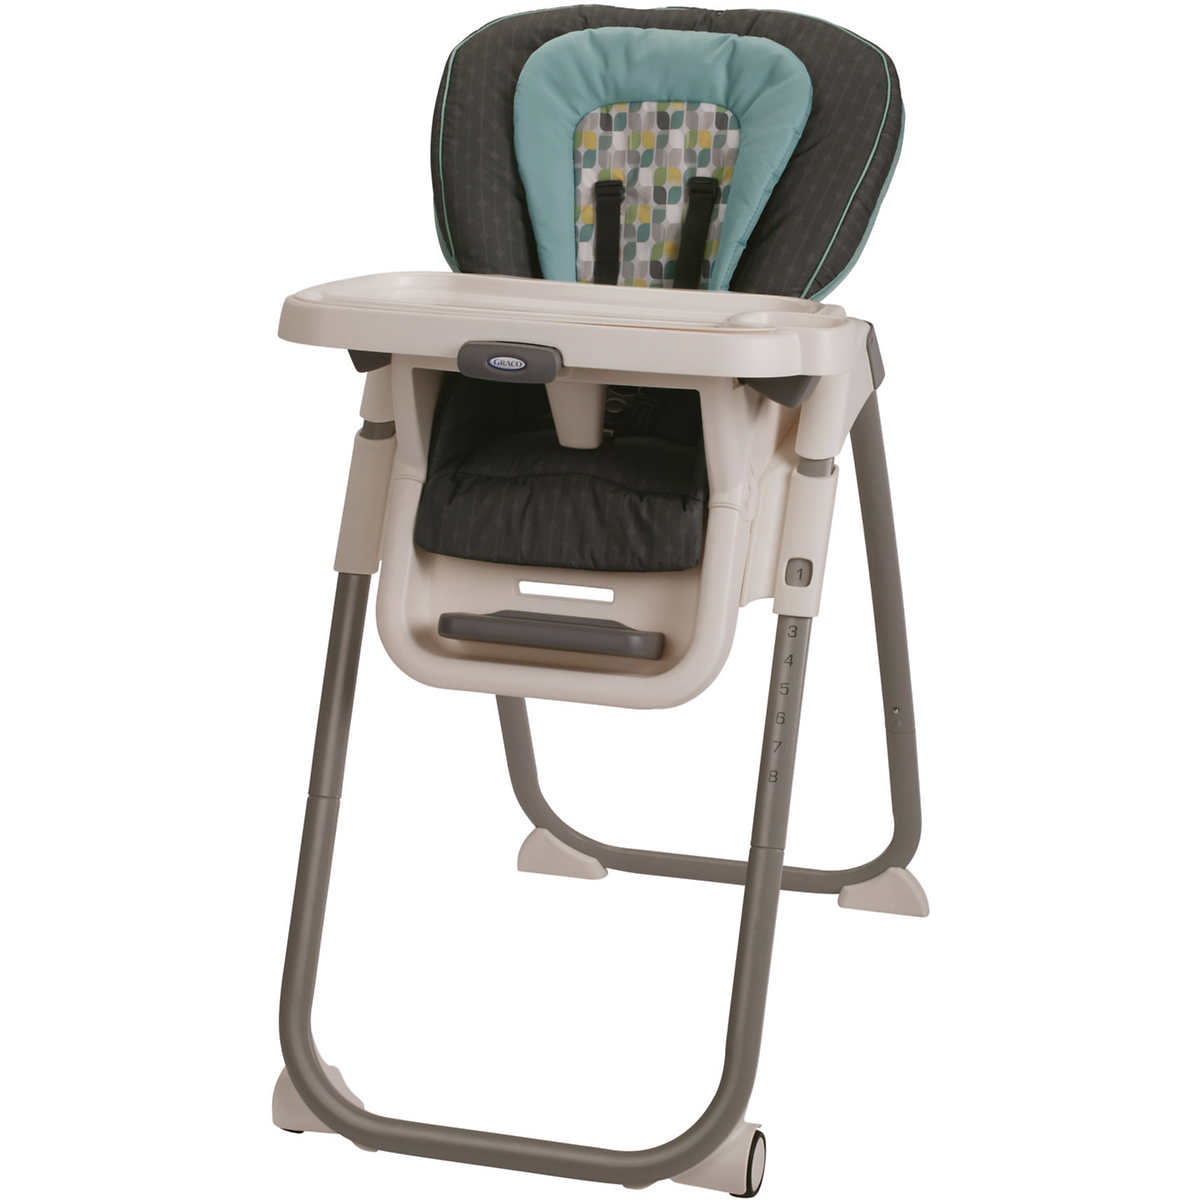 Graco meal time high chair - Member Only Item Graco Tablefit High Chair